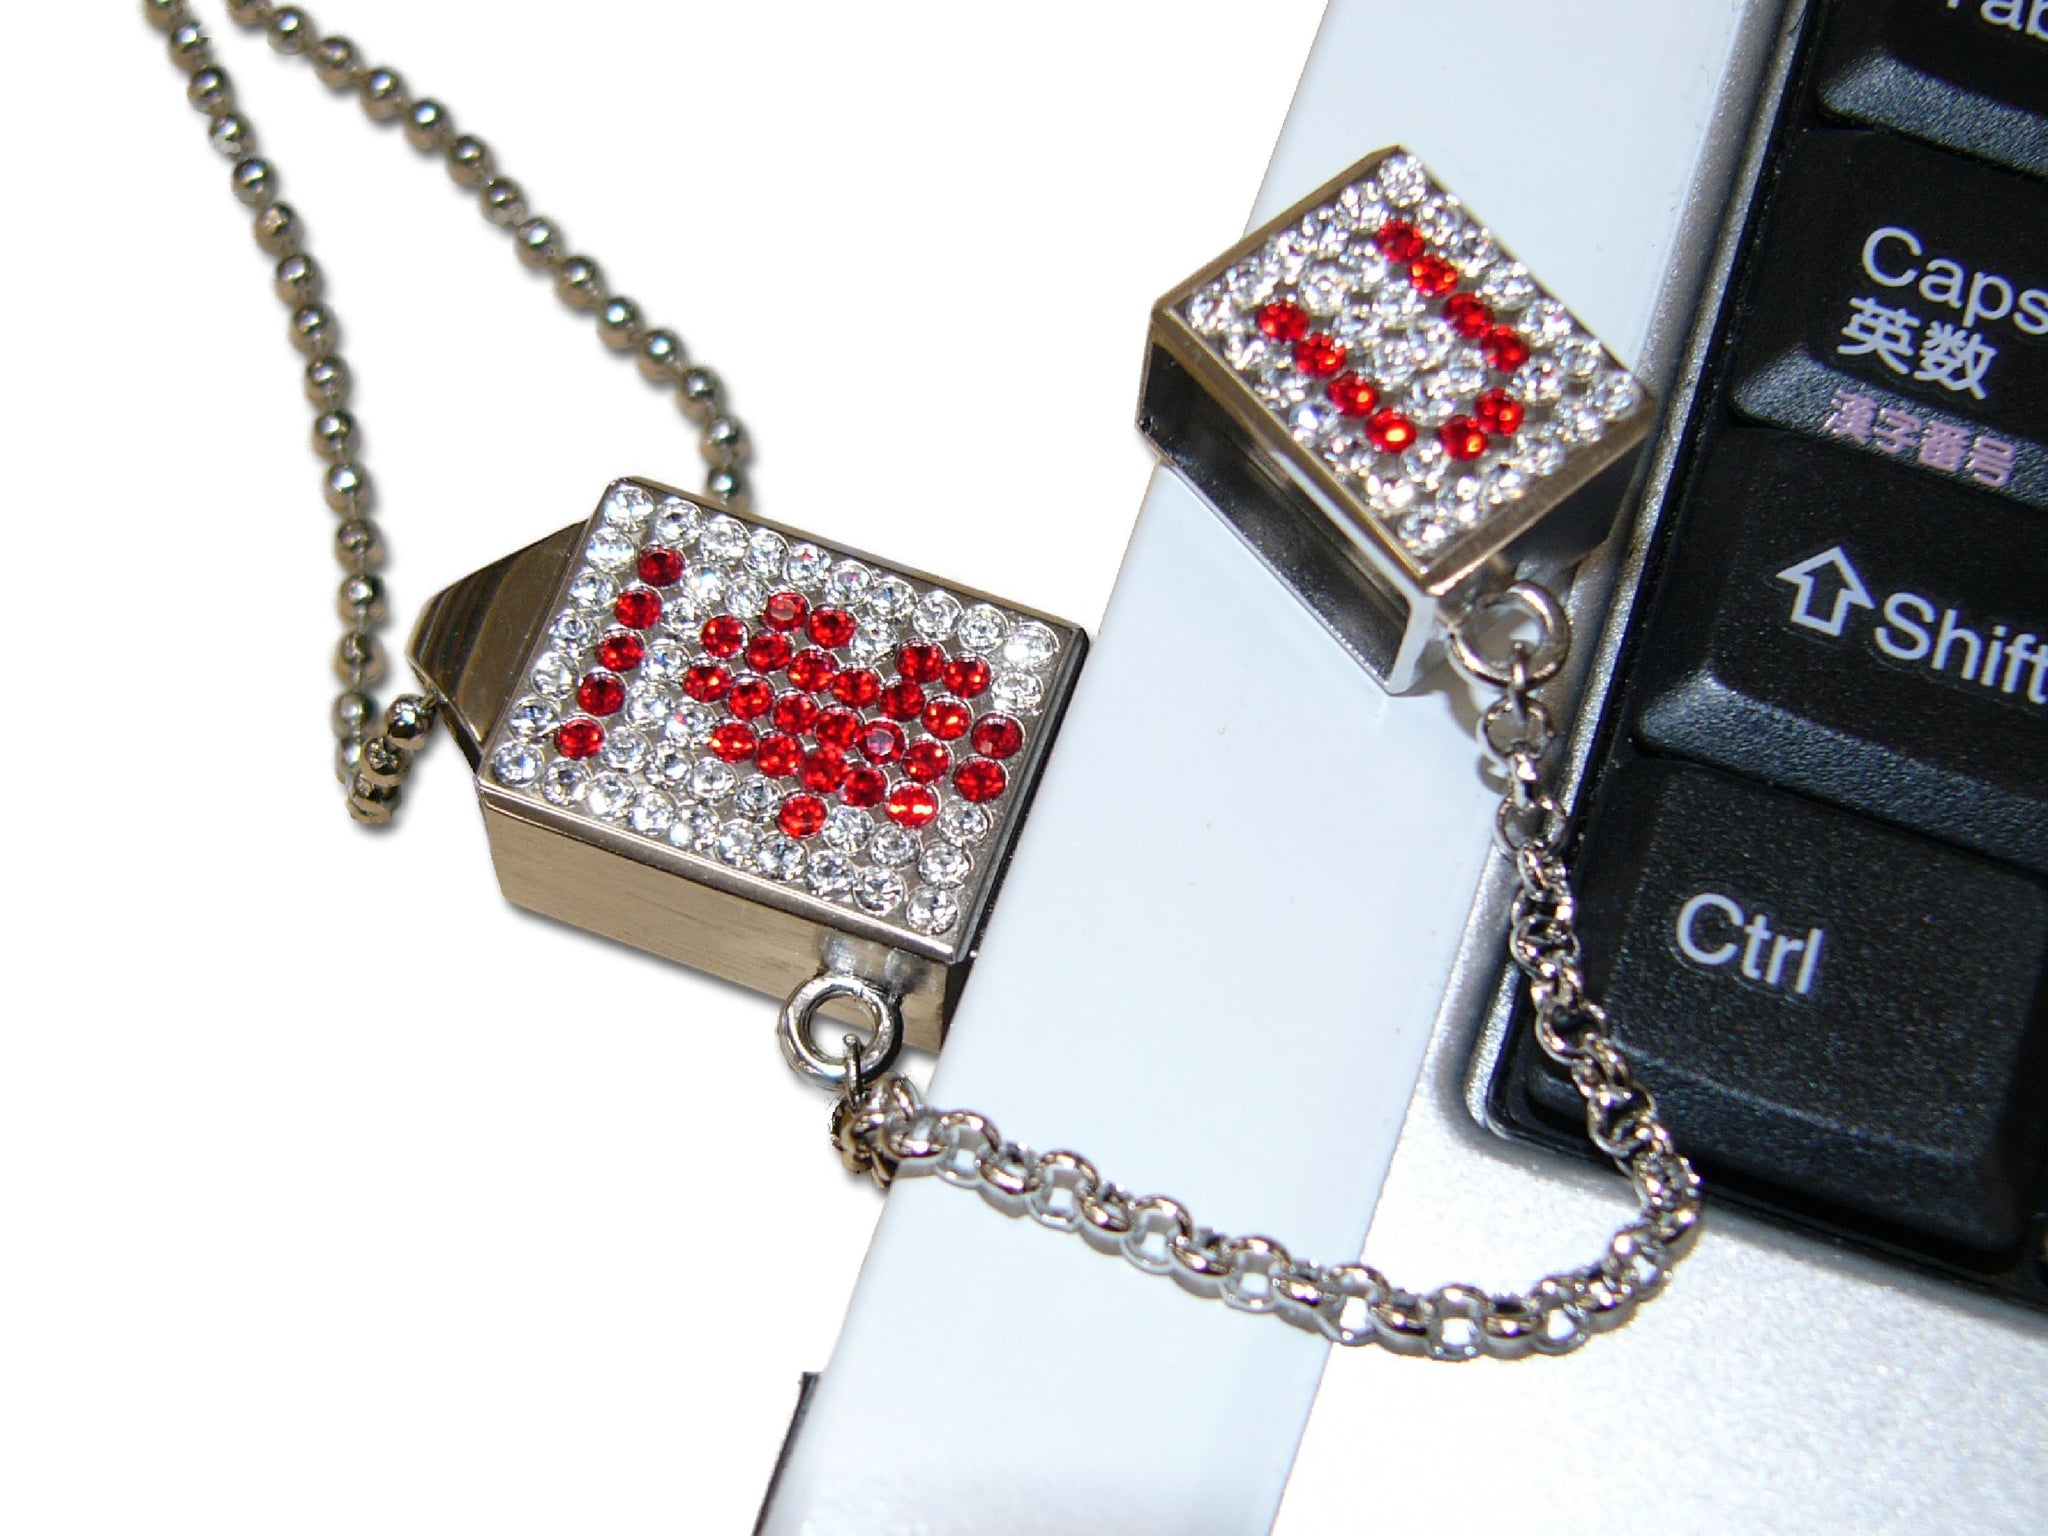 USB Bling Adds Icing To Your...Neck?